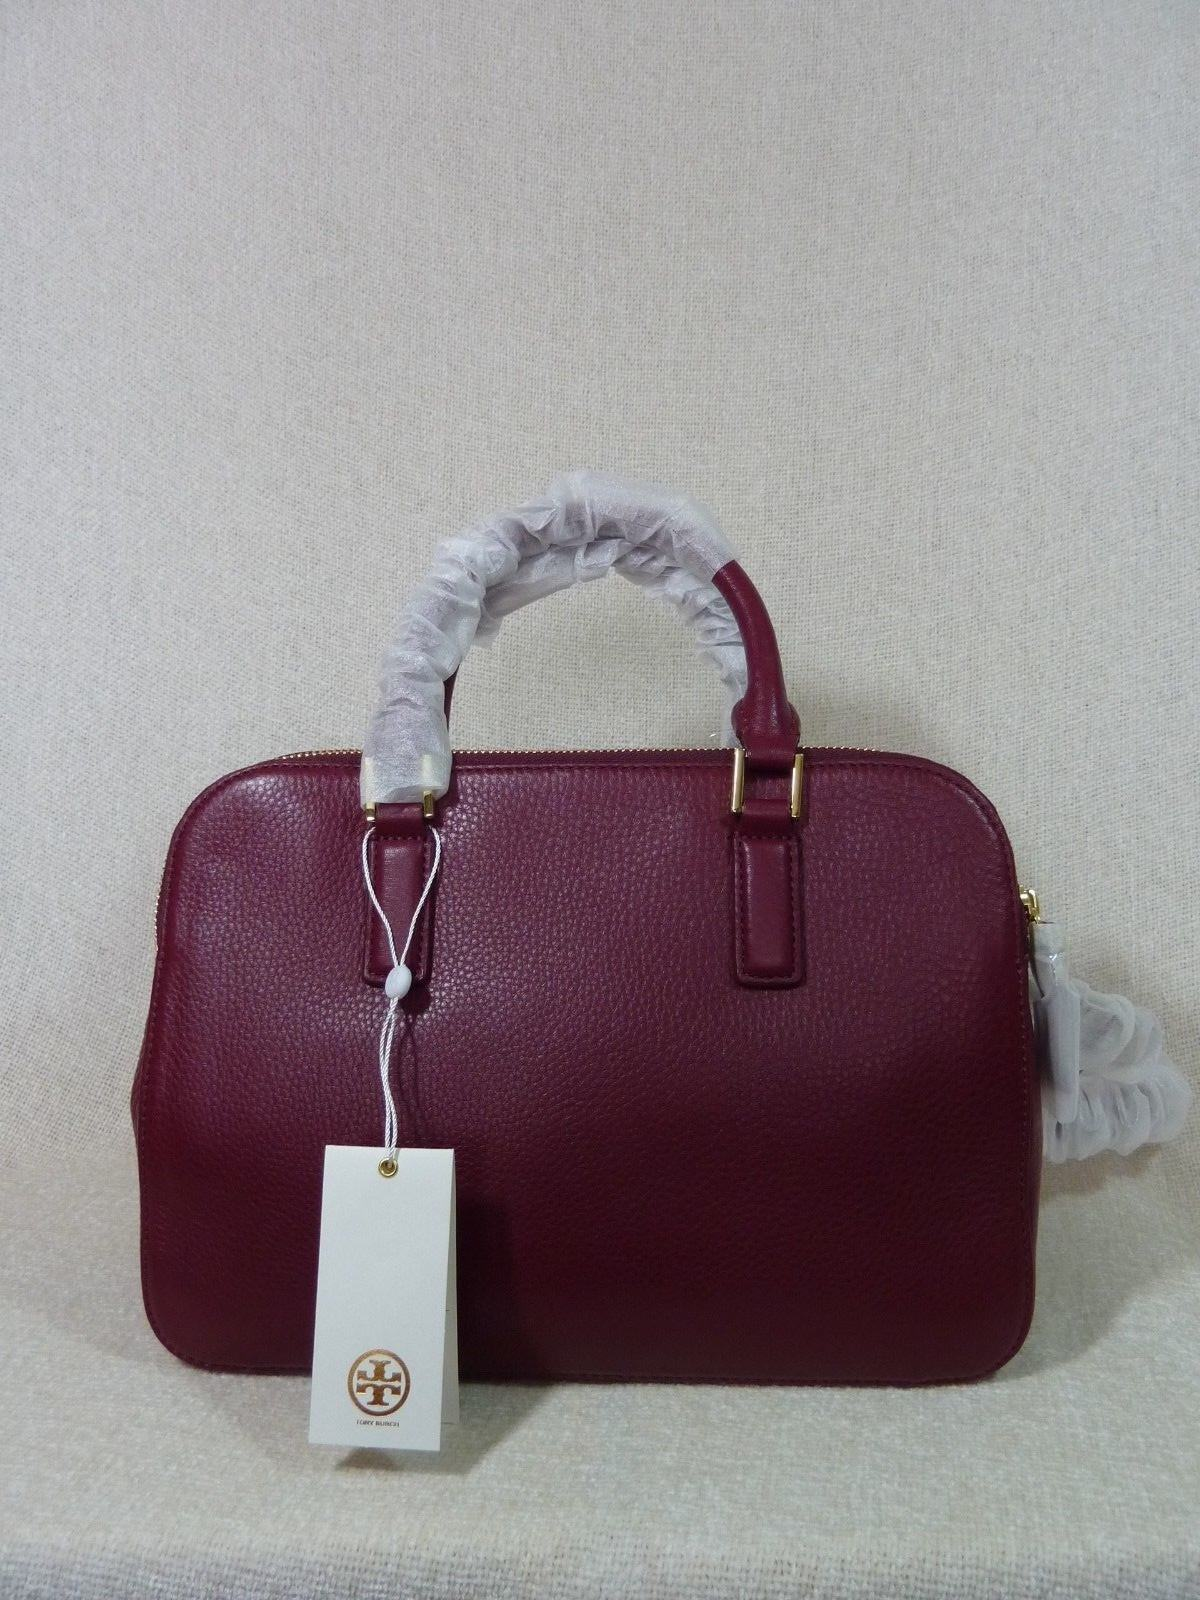 70cea8b3d7ff Tory Burch Thea Small Rounded Double Zip Shiraz Satchel Handbag 41159702  for sale online